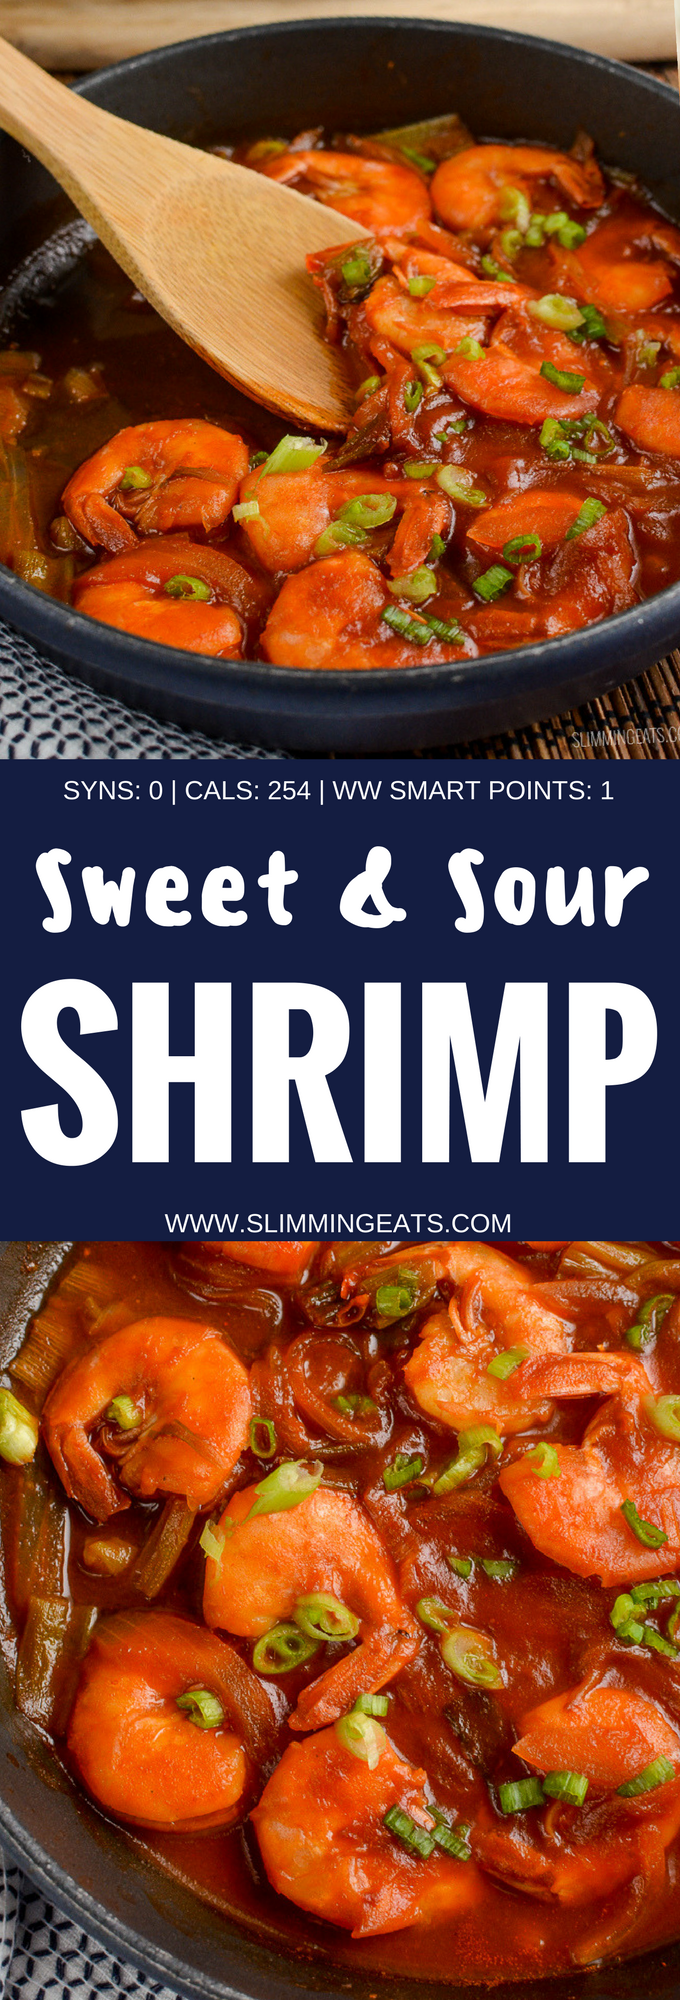 Slimming Eats Syn Free Sweet and Sour Shrimp - gluten free, dairy free, Slimming World and Weight Watchers friendly